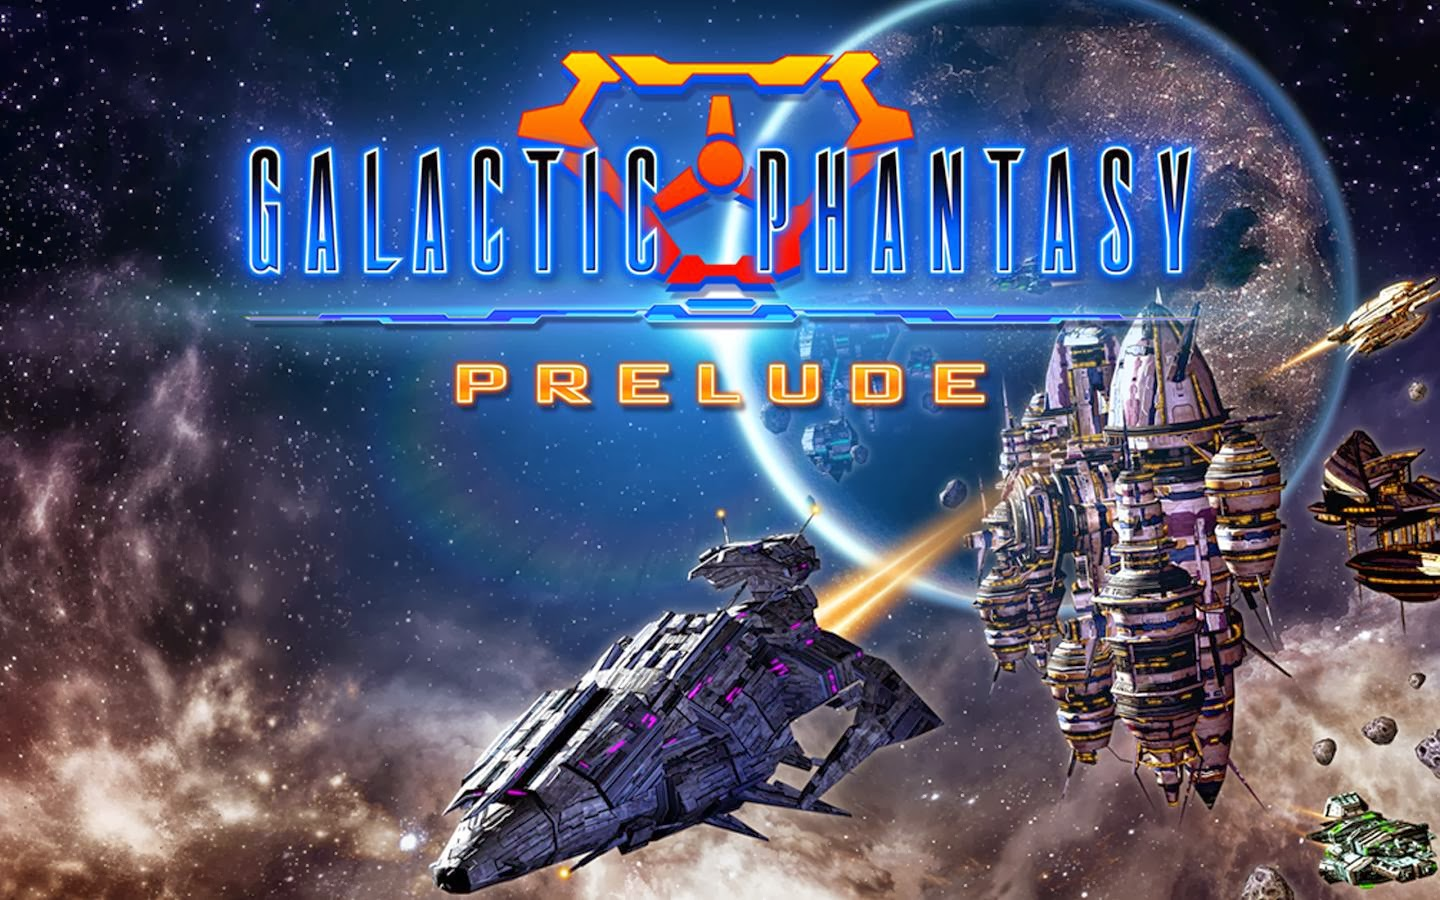 Phantasy Prelude MOD APK + DATA (Unlimited Money) Free Android Game